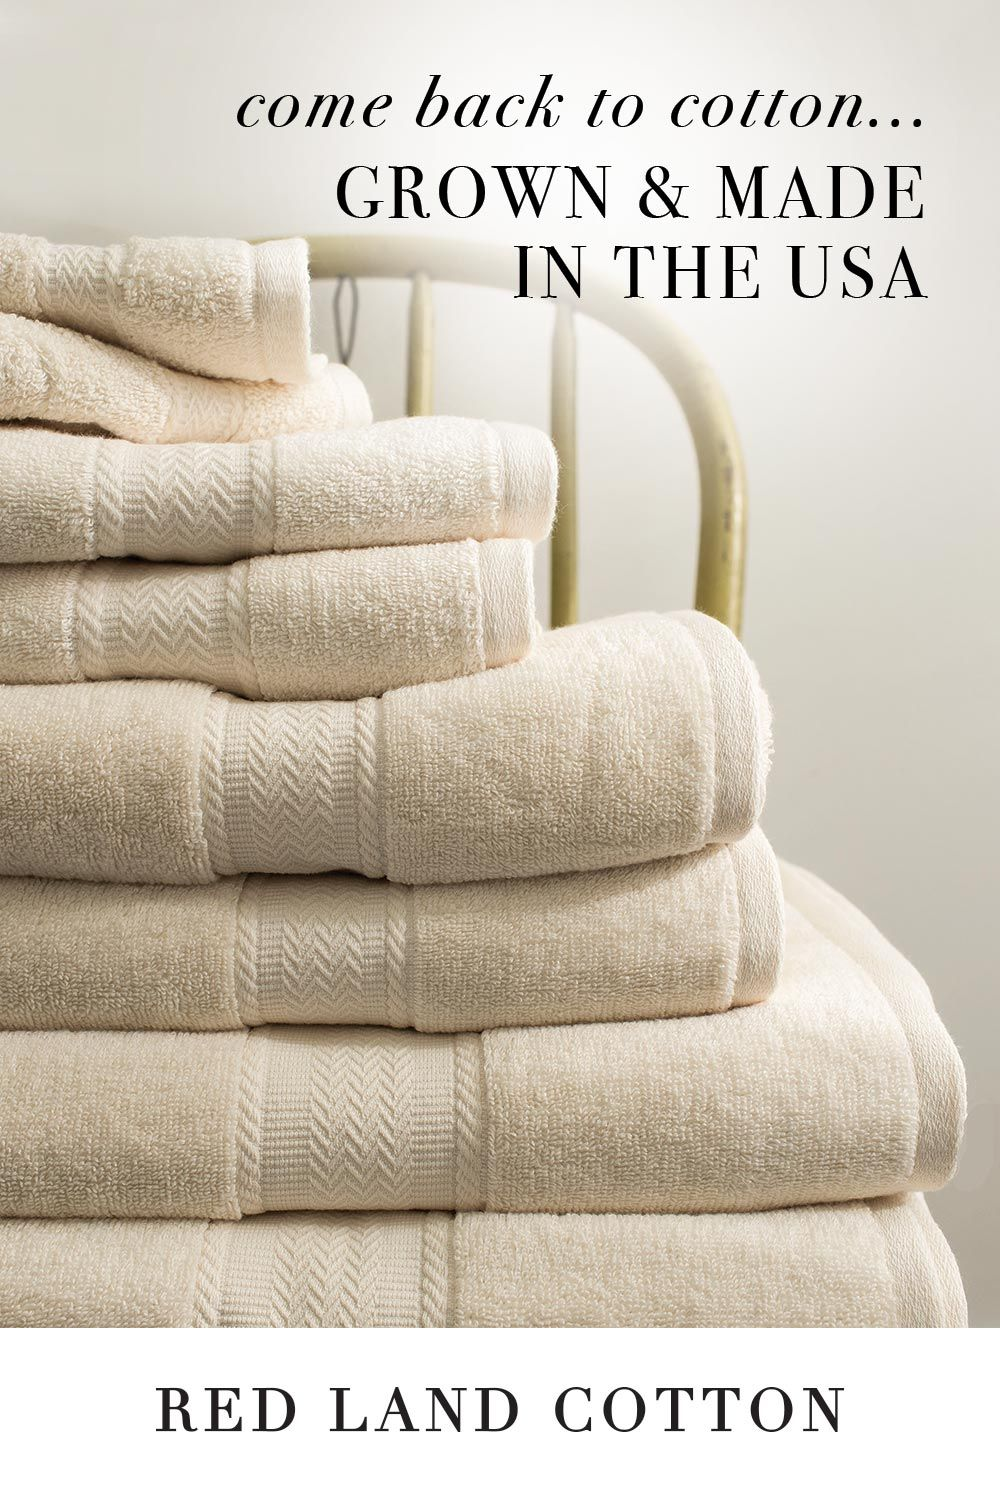 700 Gram Luxury Bath Towels Woven From The Finest Long Staple